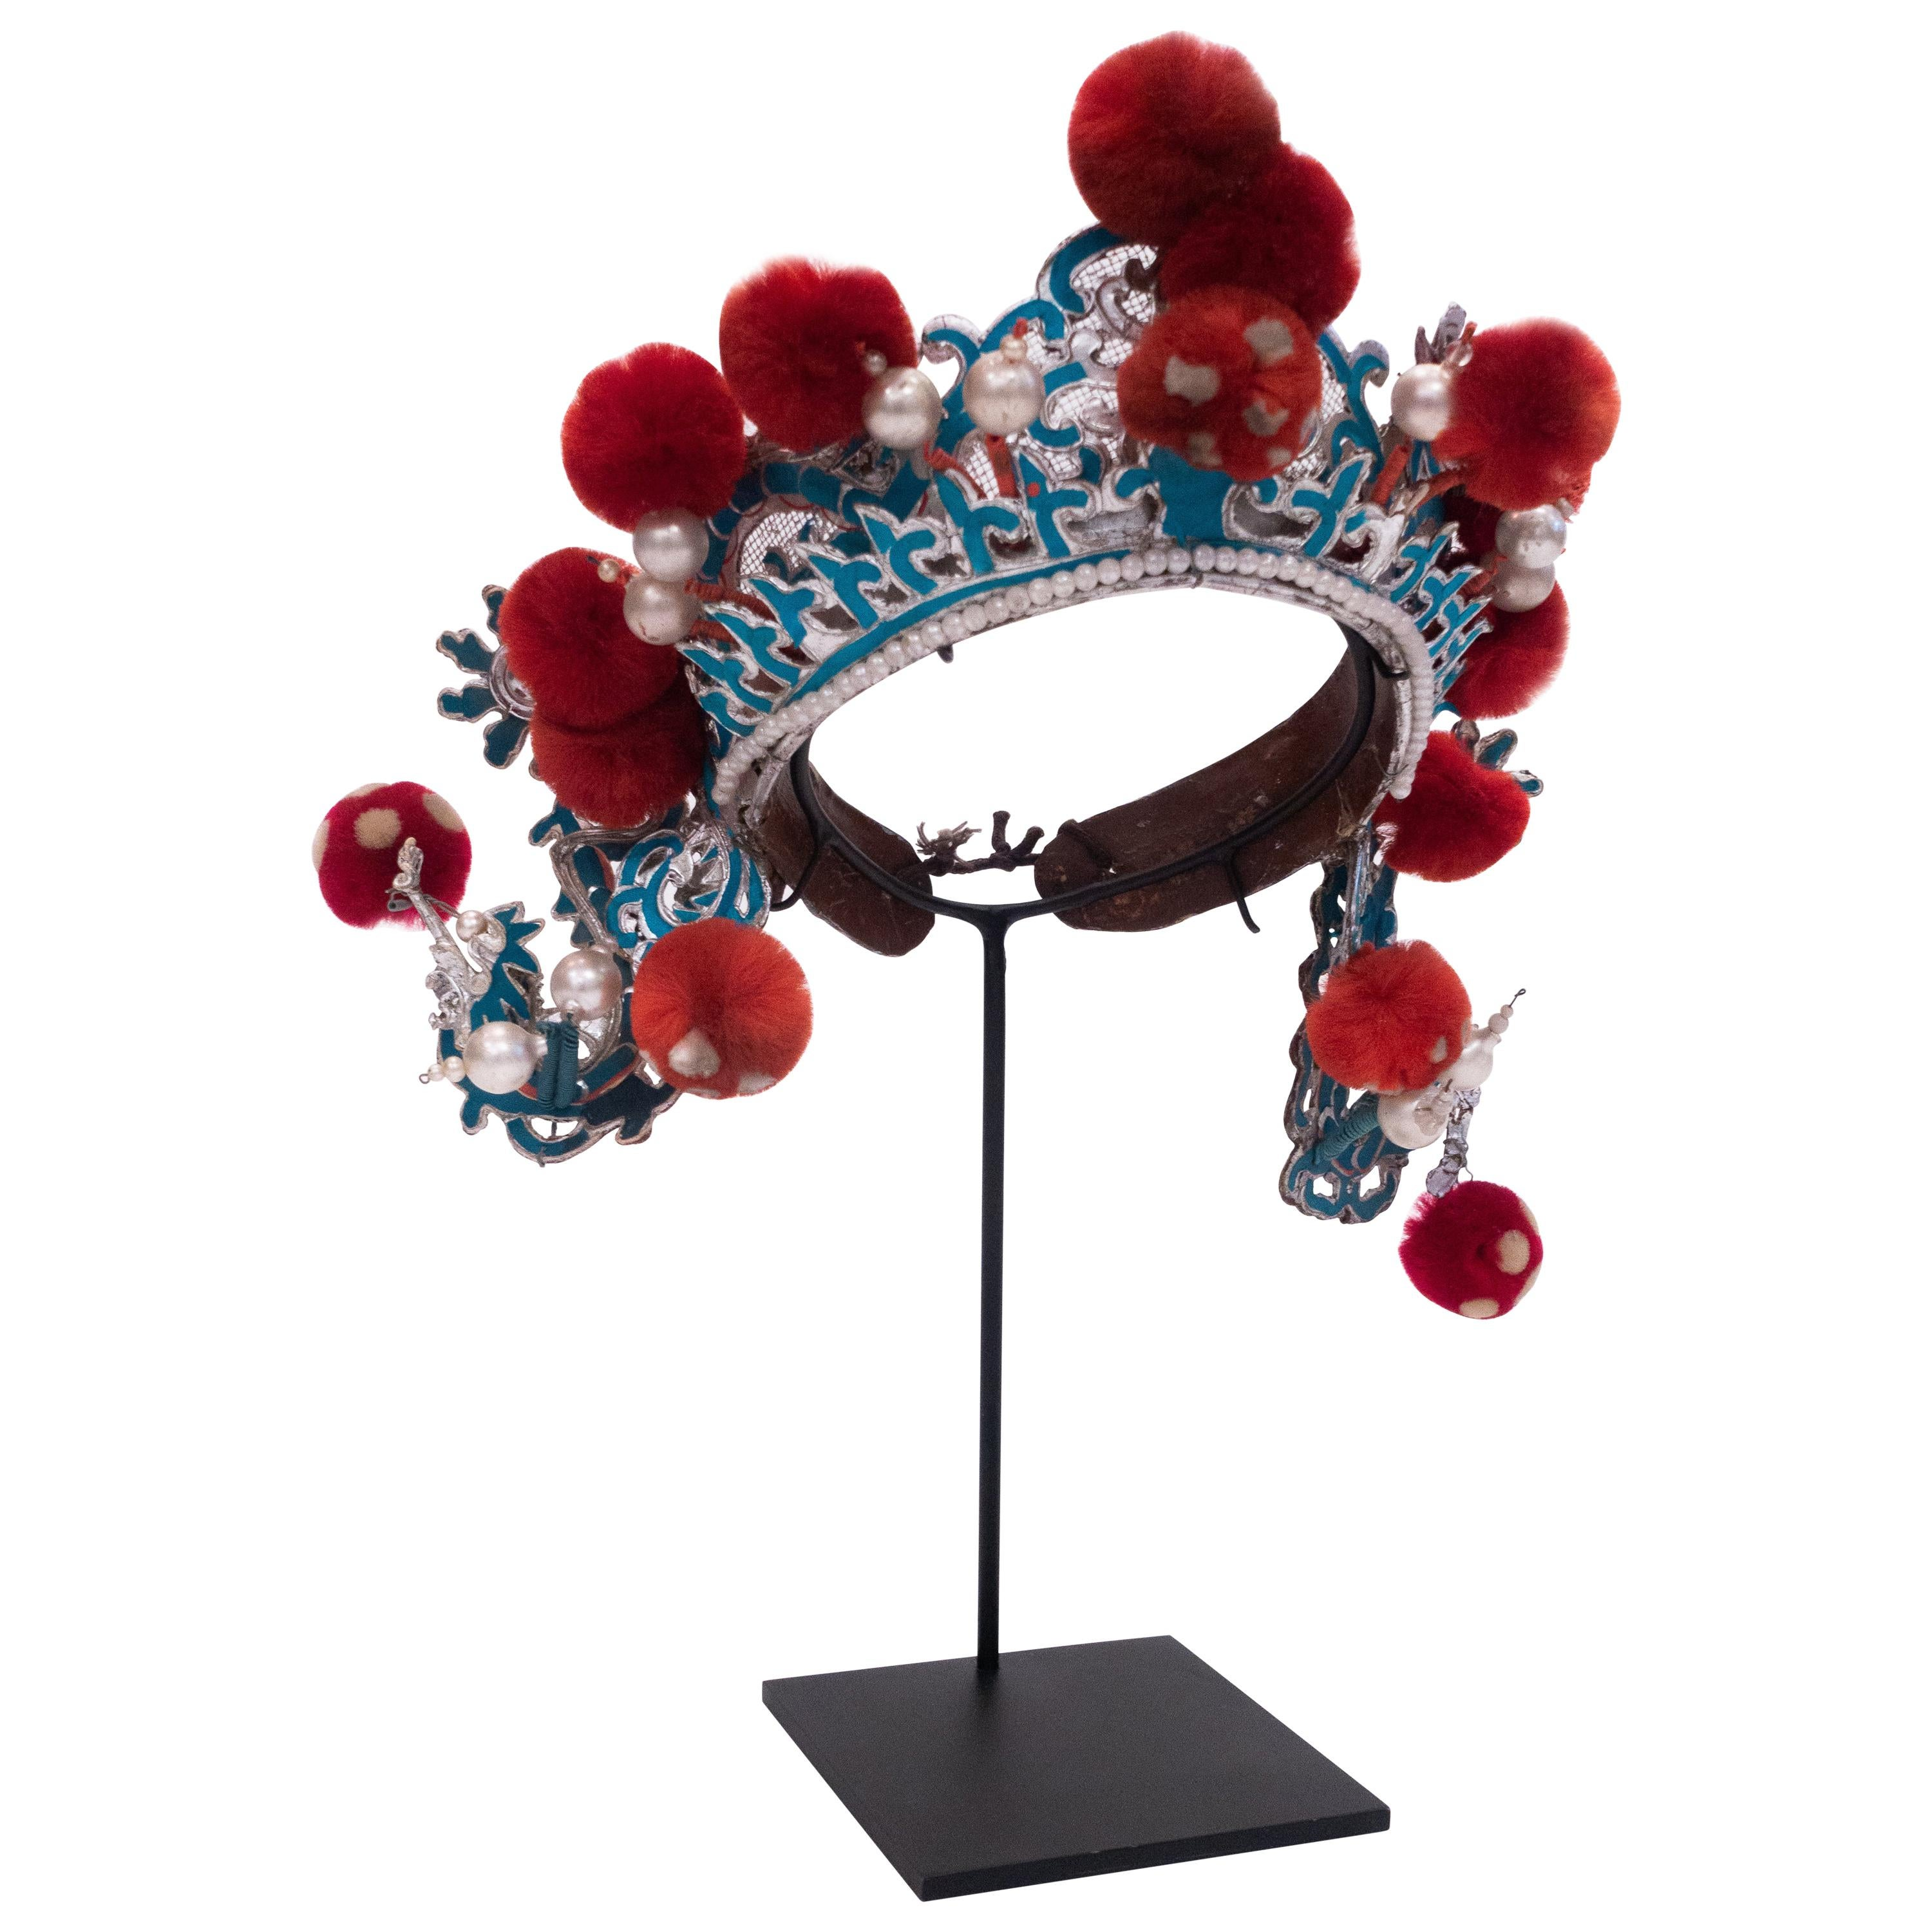 Antique Chinese Opera Theatre Headdress in Turquoise with Red Pom Poms